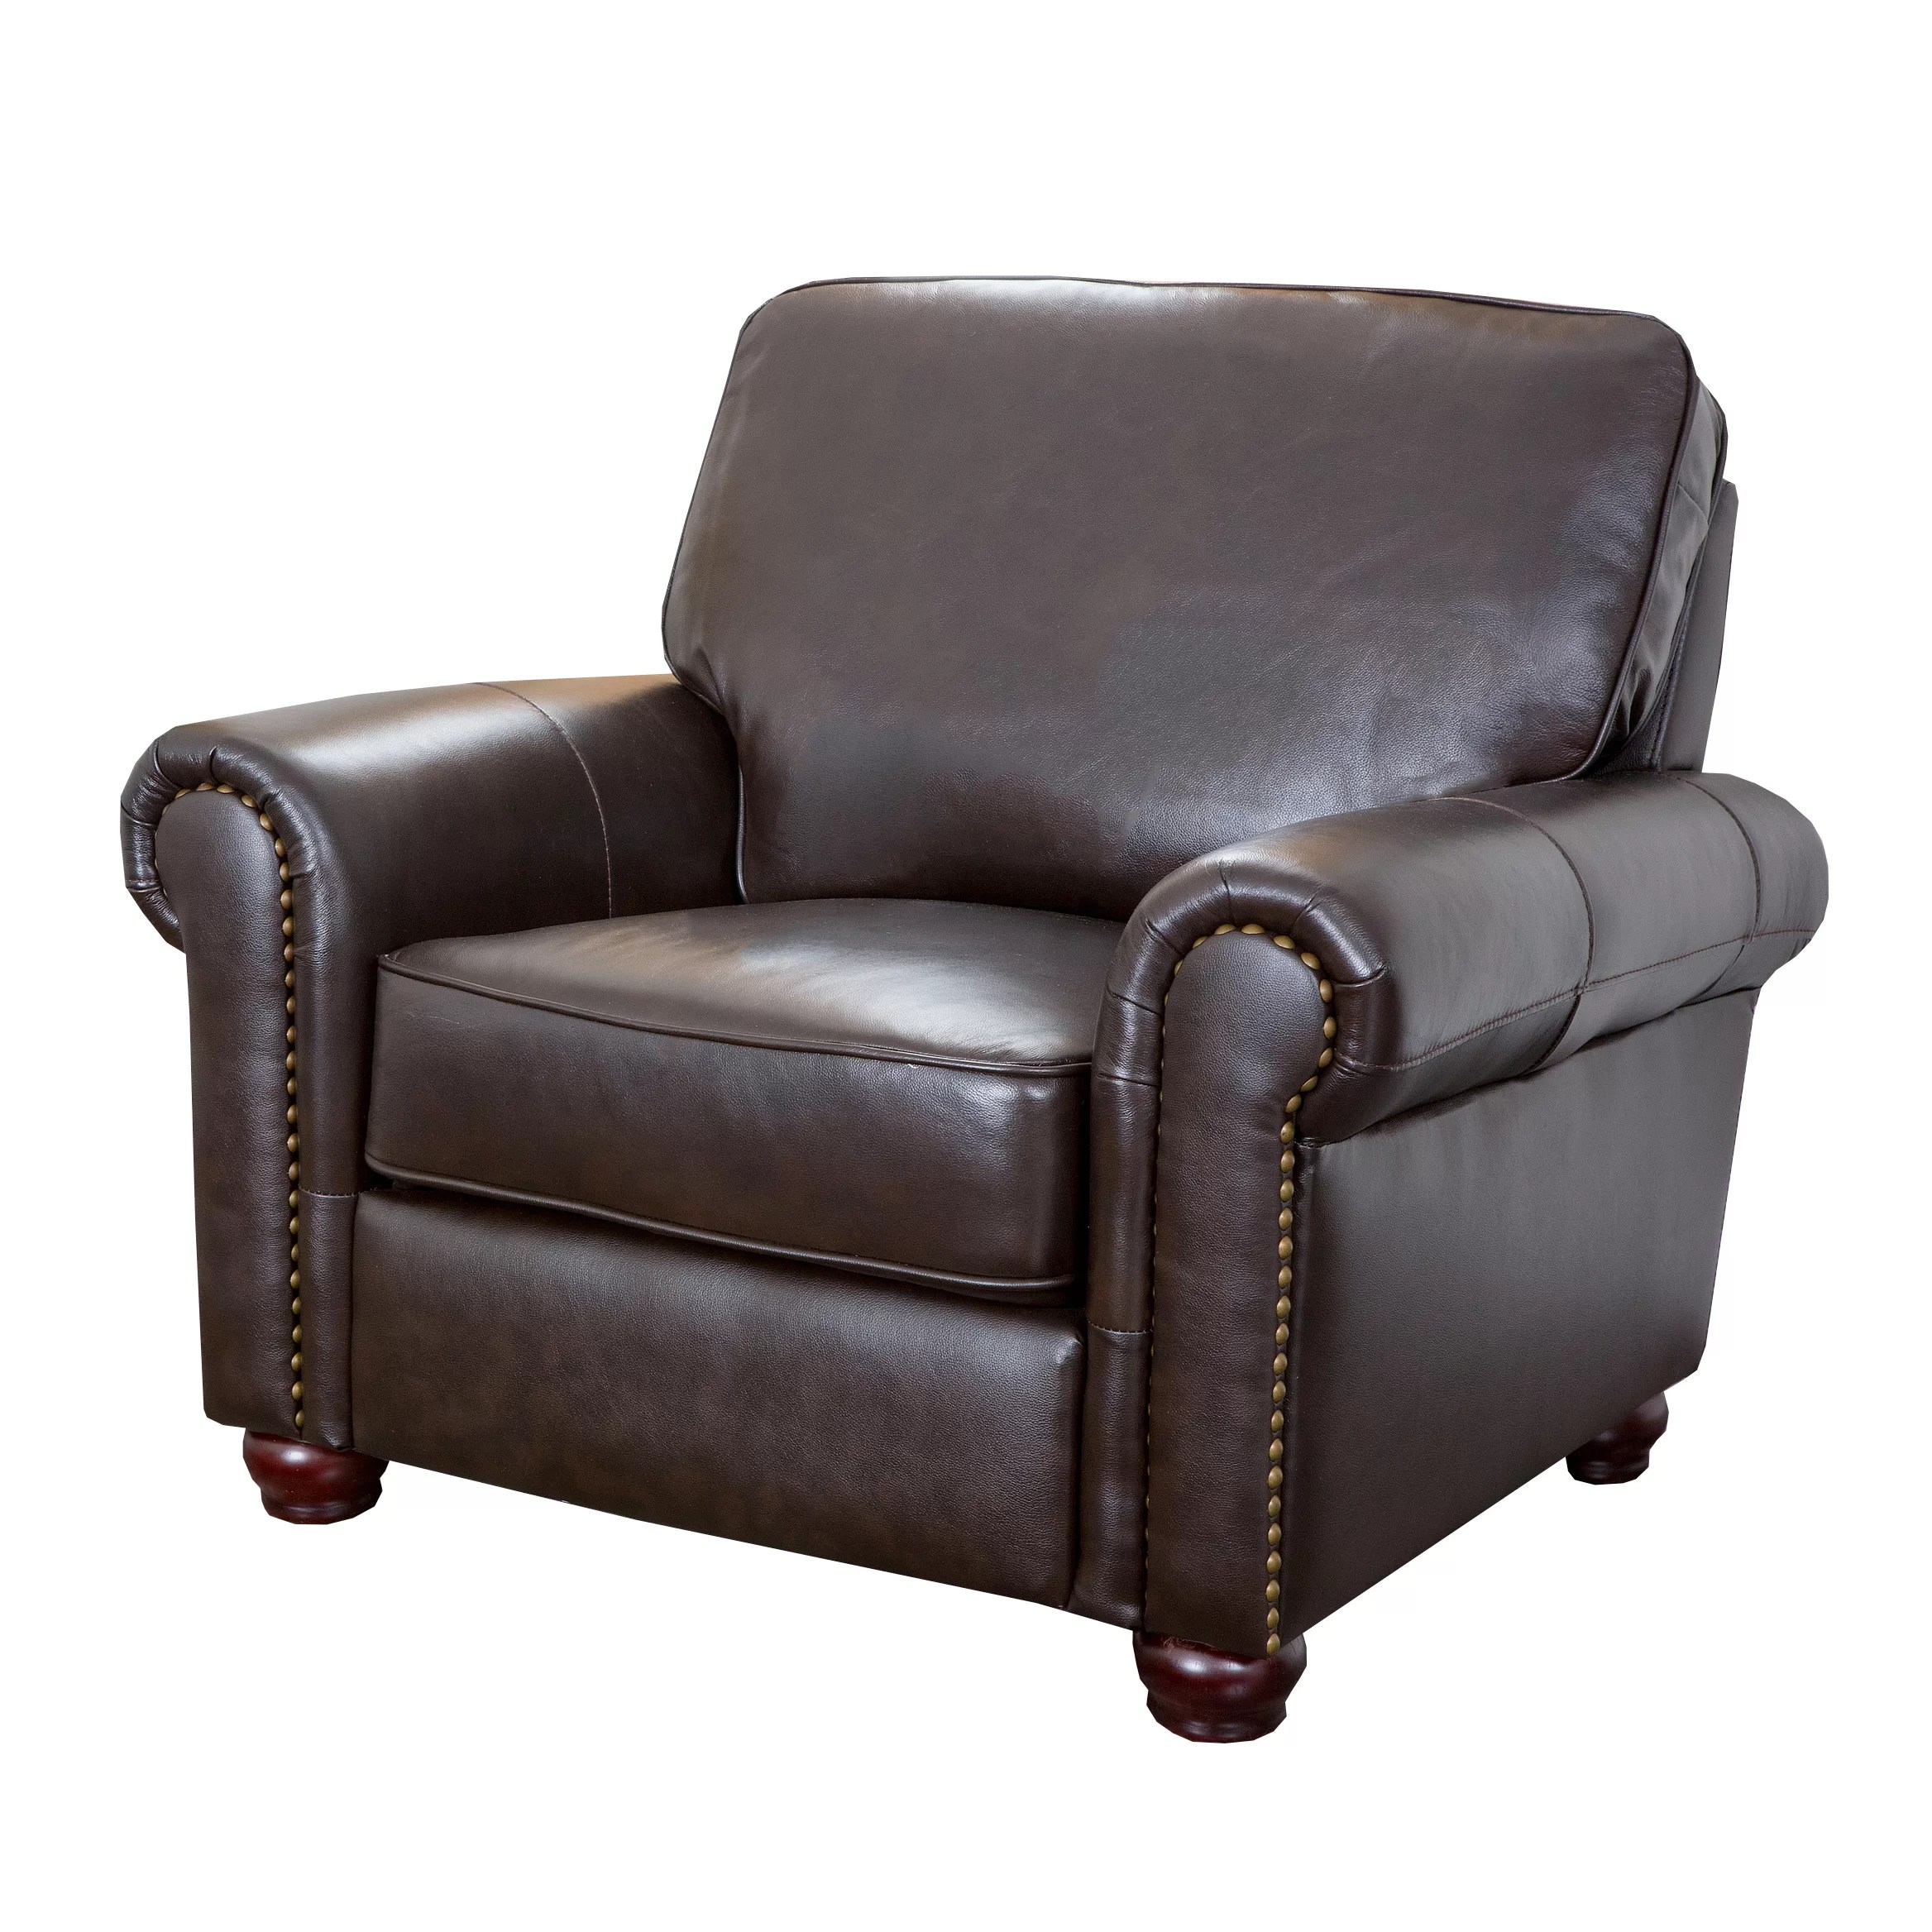 Leather Club Chair Darby Home Co Coggins Leather Club Chair And Reviews Wayfair